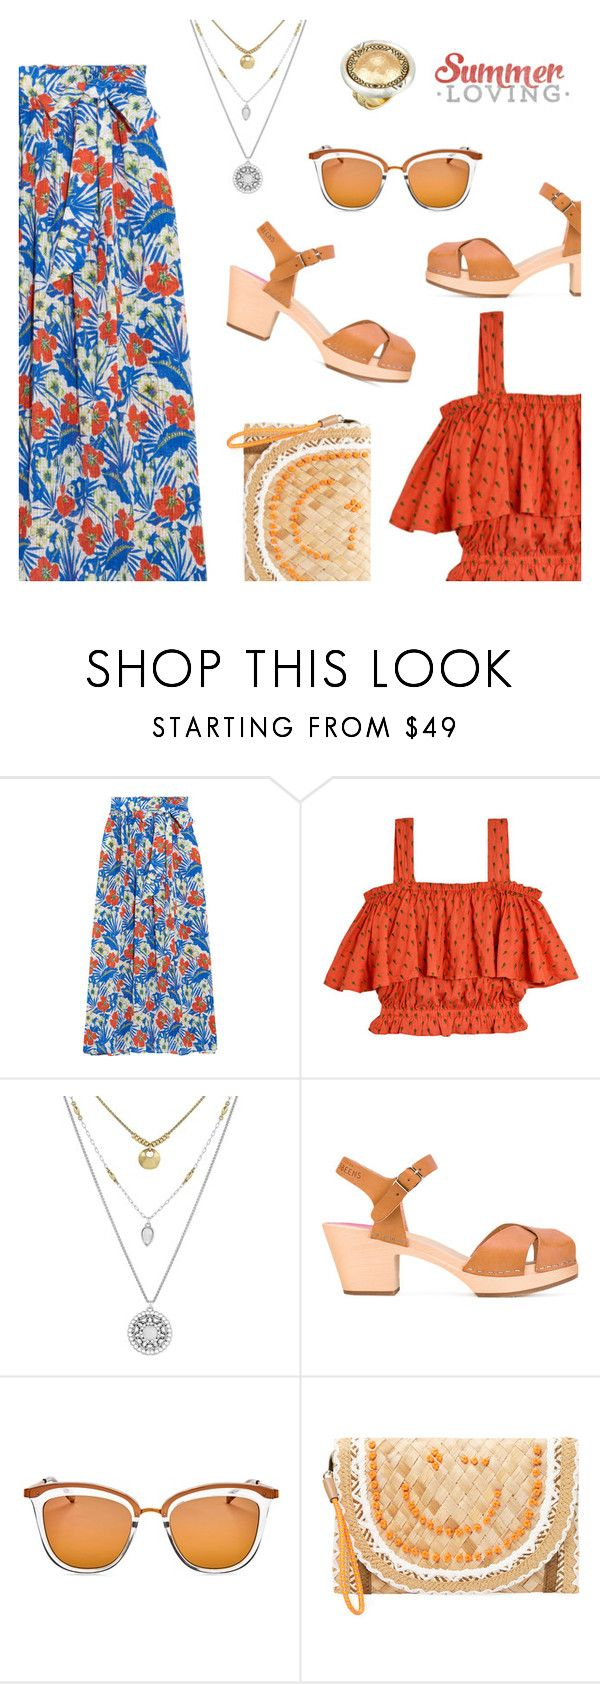 Summer Look by dressedbyrose on Polyvore featuring Samantha Pleet, Etro, Swedish Hasbeens, Anya Hindmarch, House of Harlow 1960, Lucky Brand, Le Specs, Summer and polyvoreeditorial